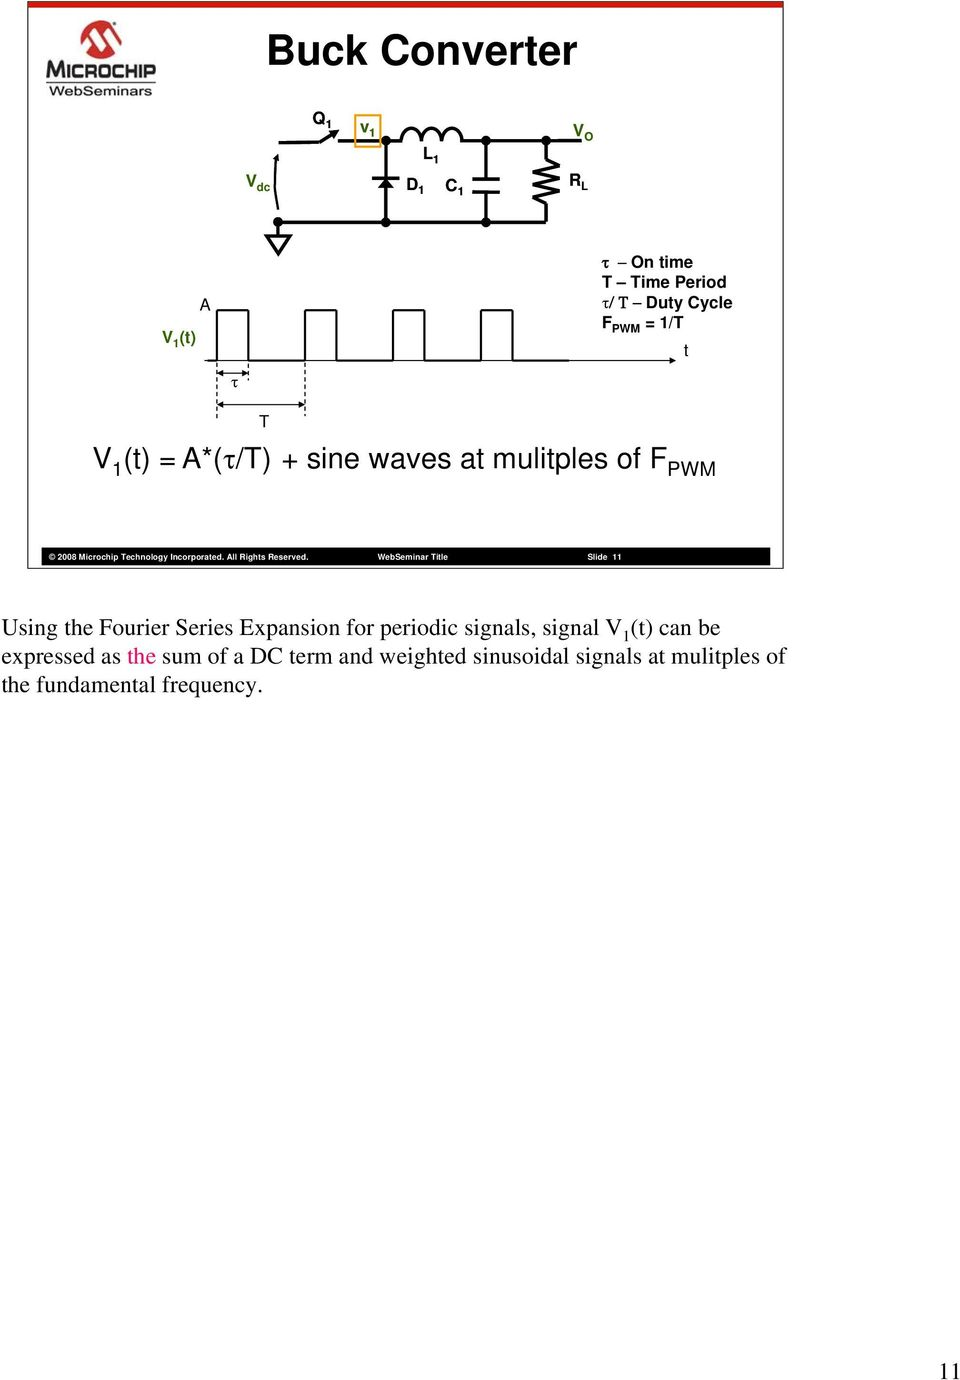 WebSeminar Title Slide 11 Using the Fourier Series Expansion for periodic signals, signal V 1 (t) can